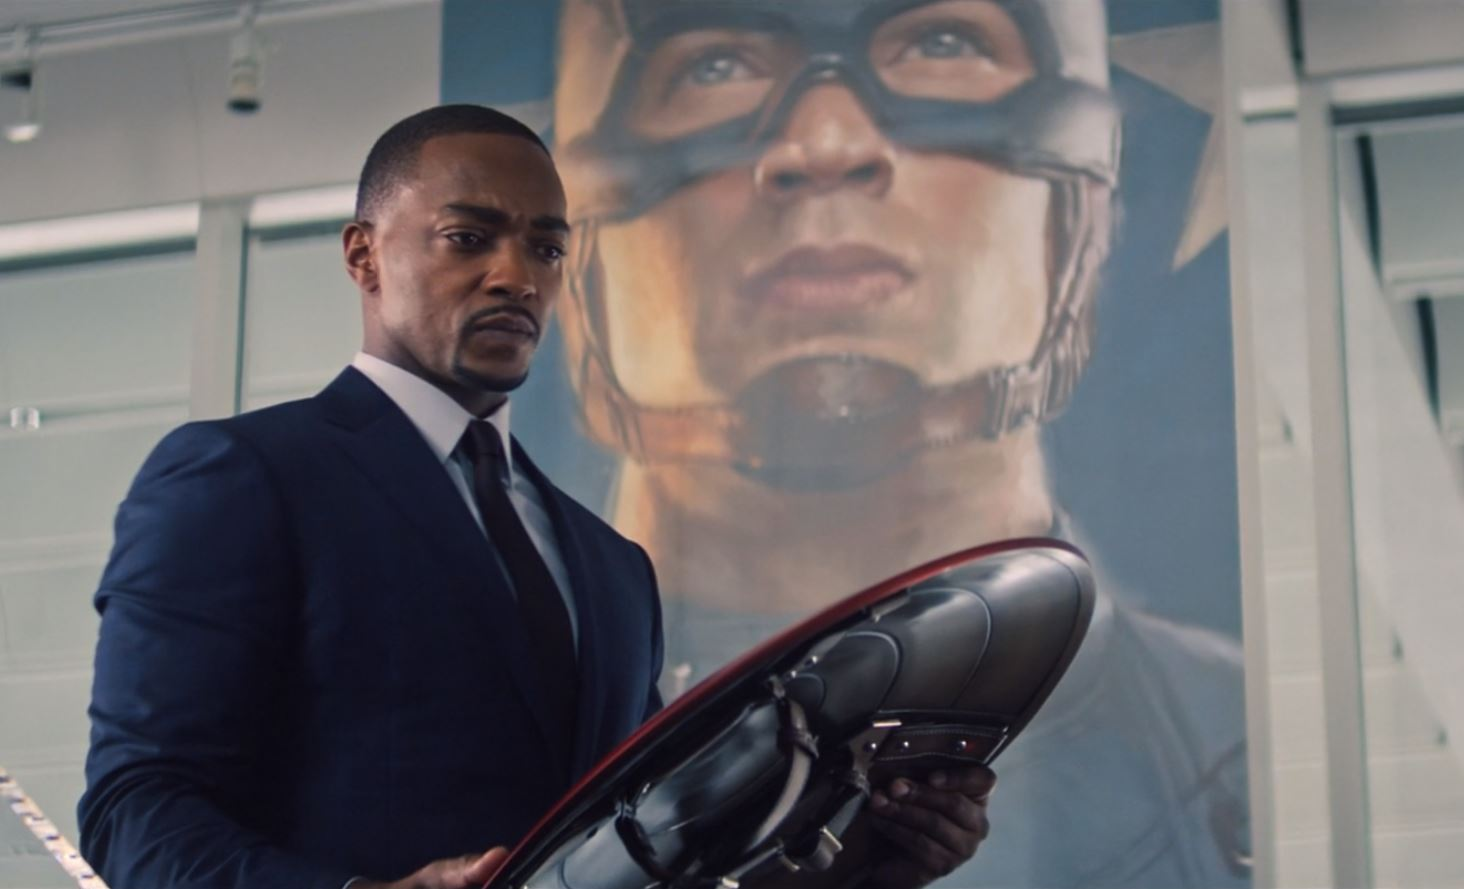 Spoiler and Preview: The Falcon and the Winter Soldier Season 1 Episode 2